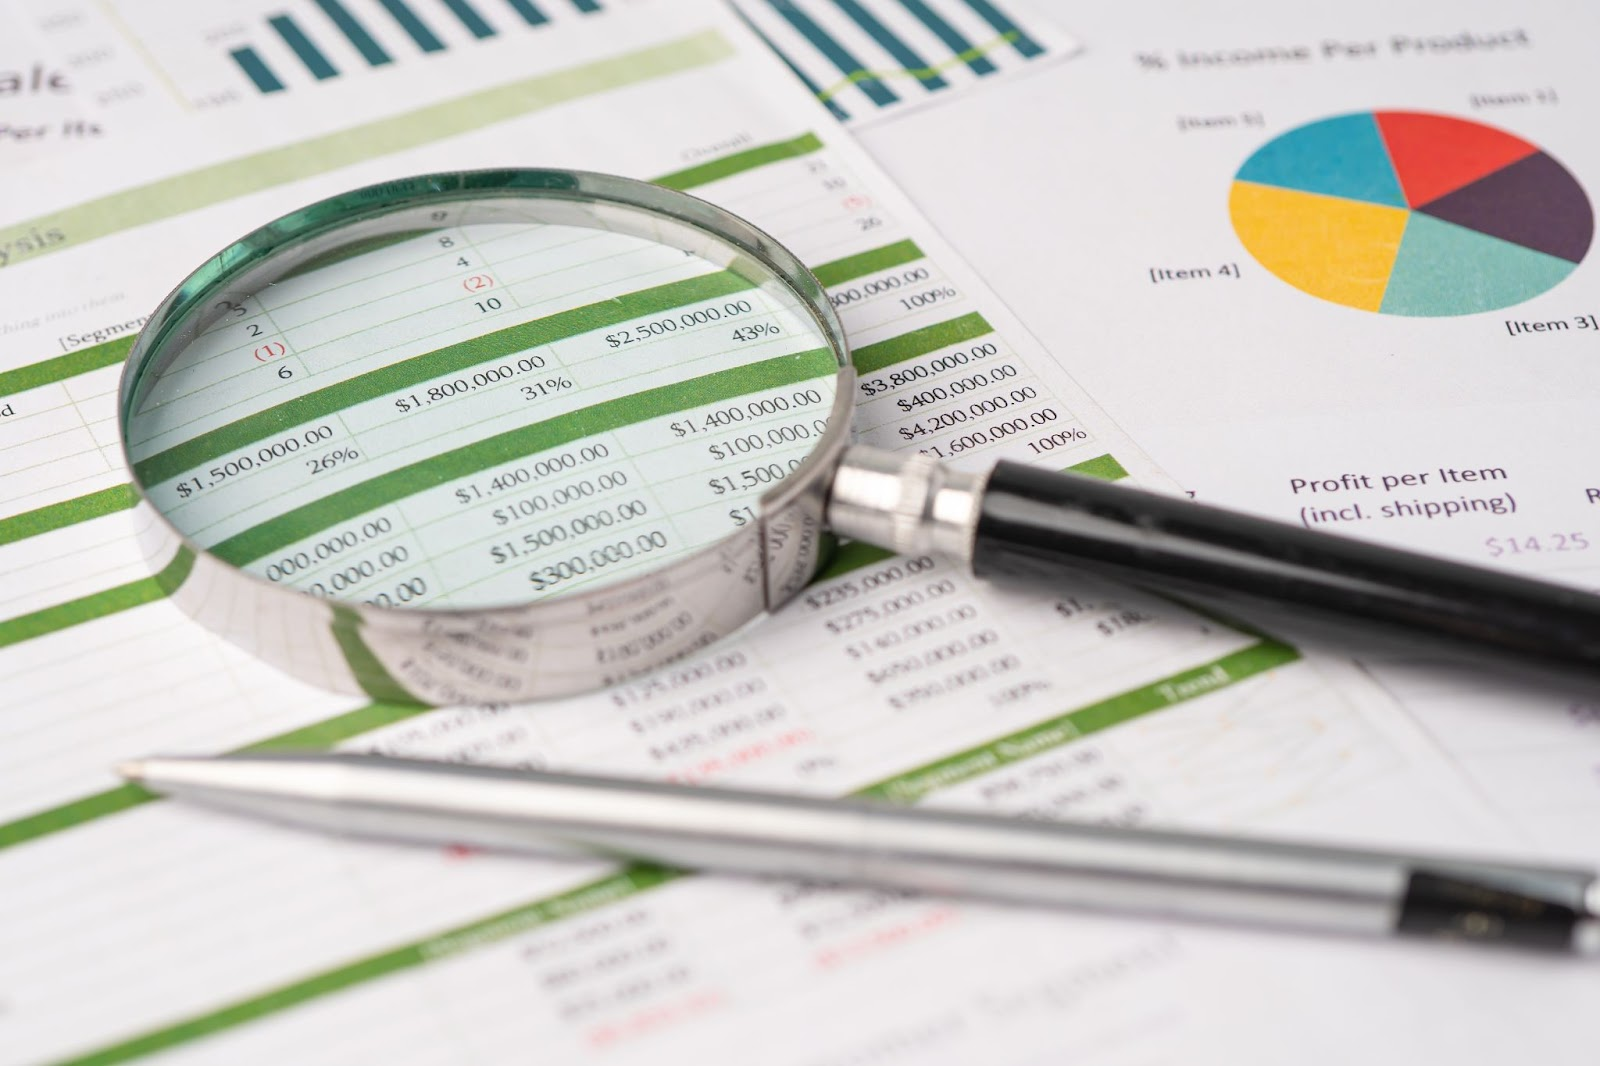 preferred stocks: Magnifying glass and a pen on top of financial statements